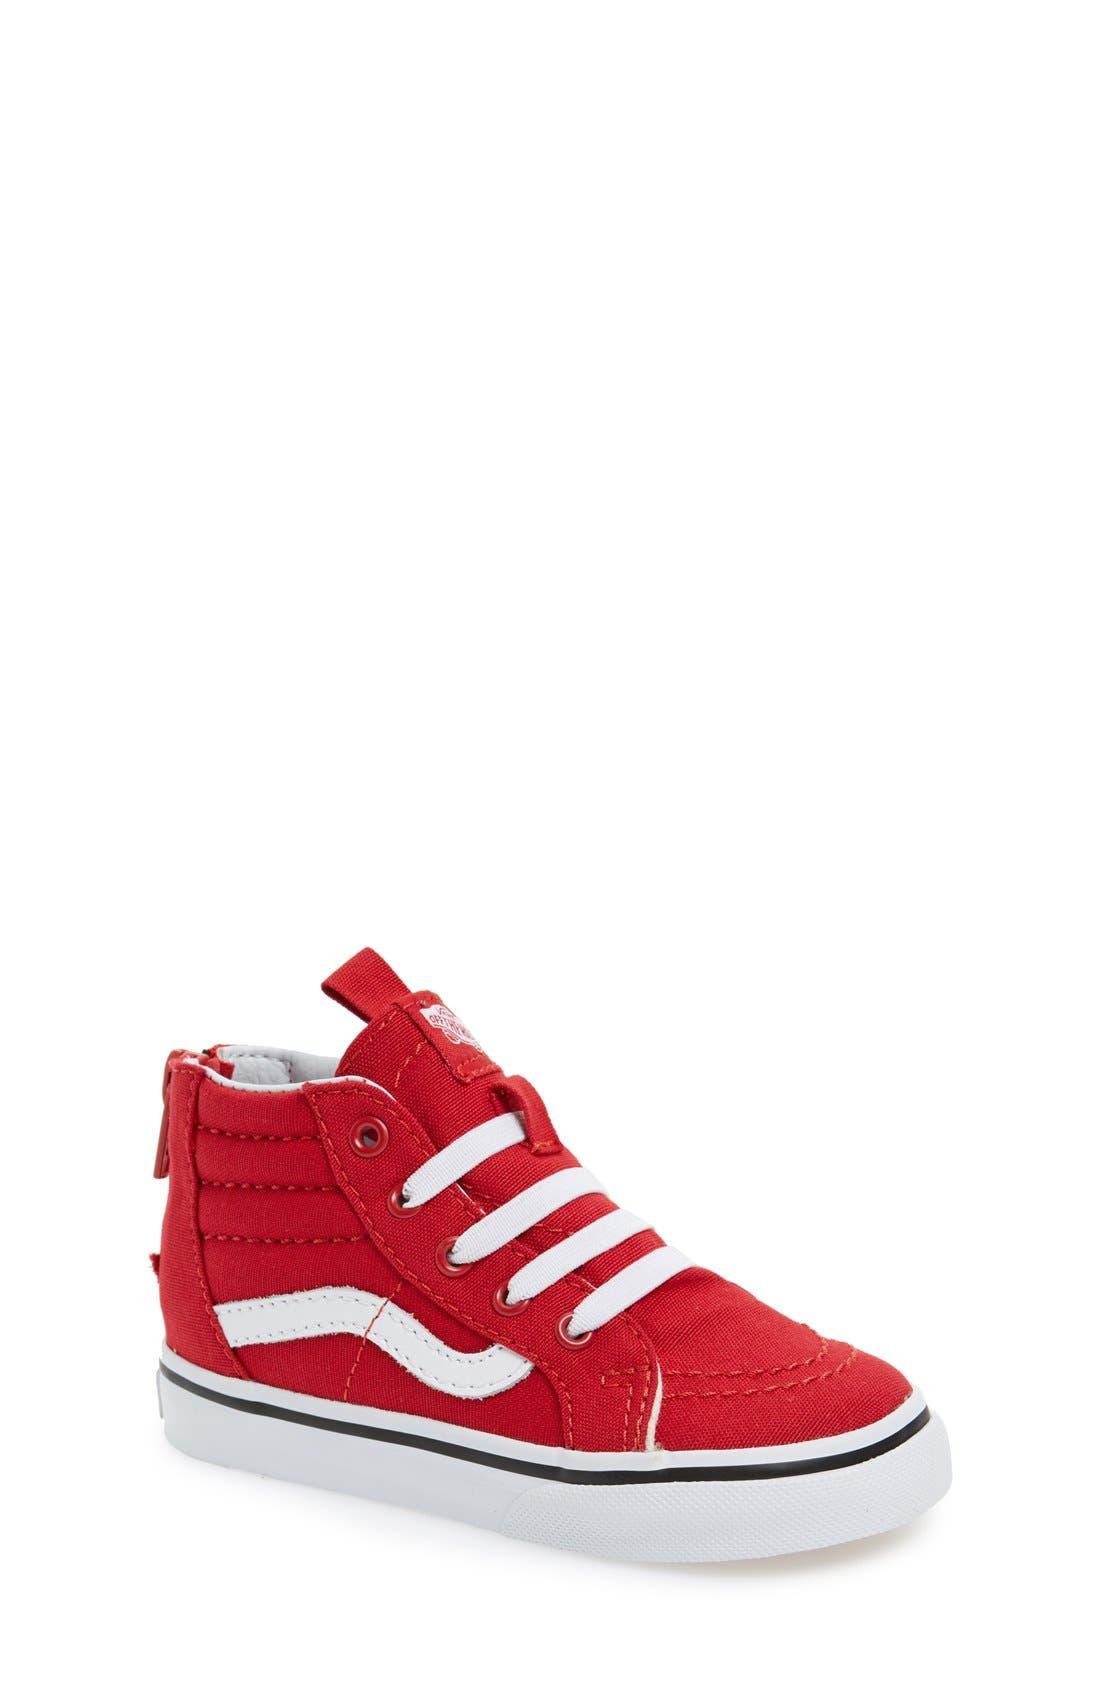 VANS 'Sk8-Hi' Zip Sneaker, Main, color, RACING RED/TRUE WHITE